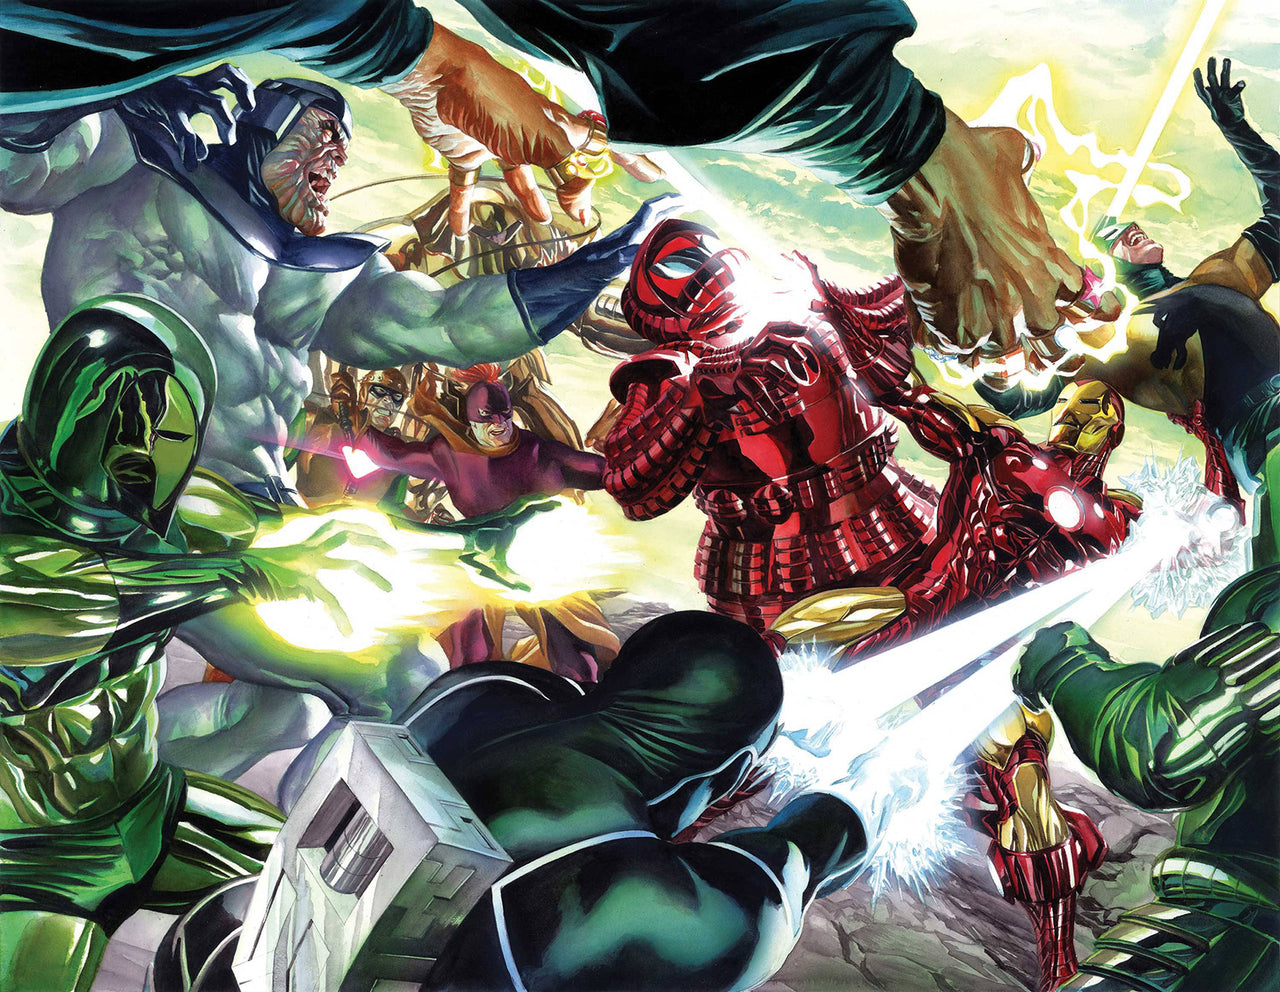 Iron Man Wraparound Cover issue #1